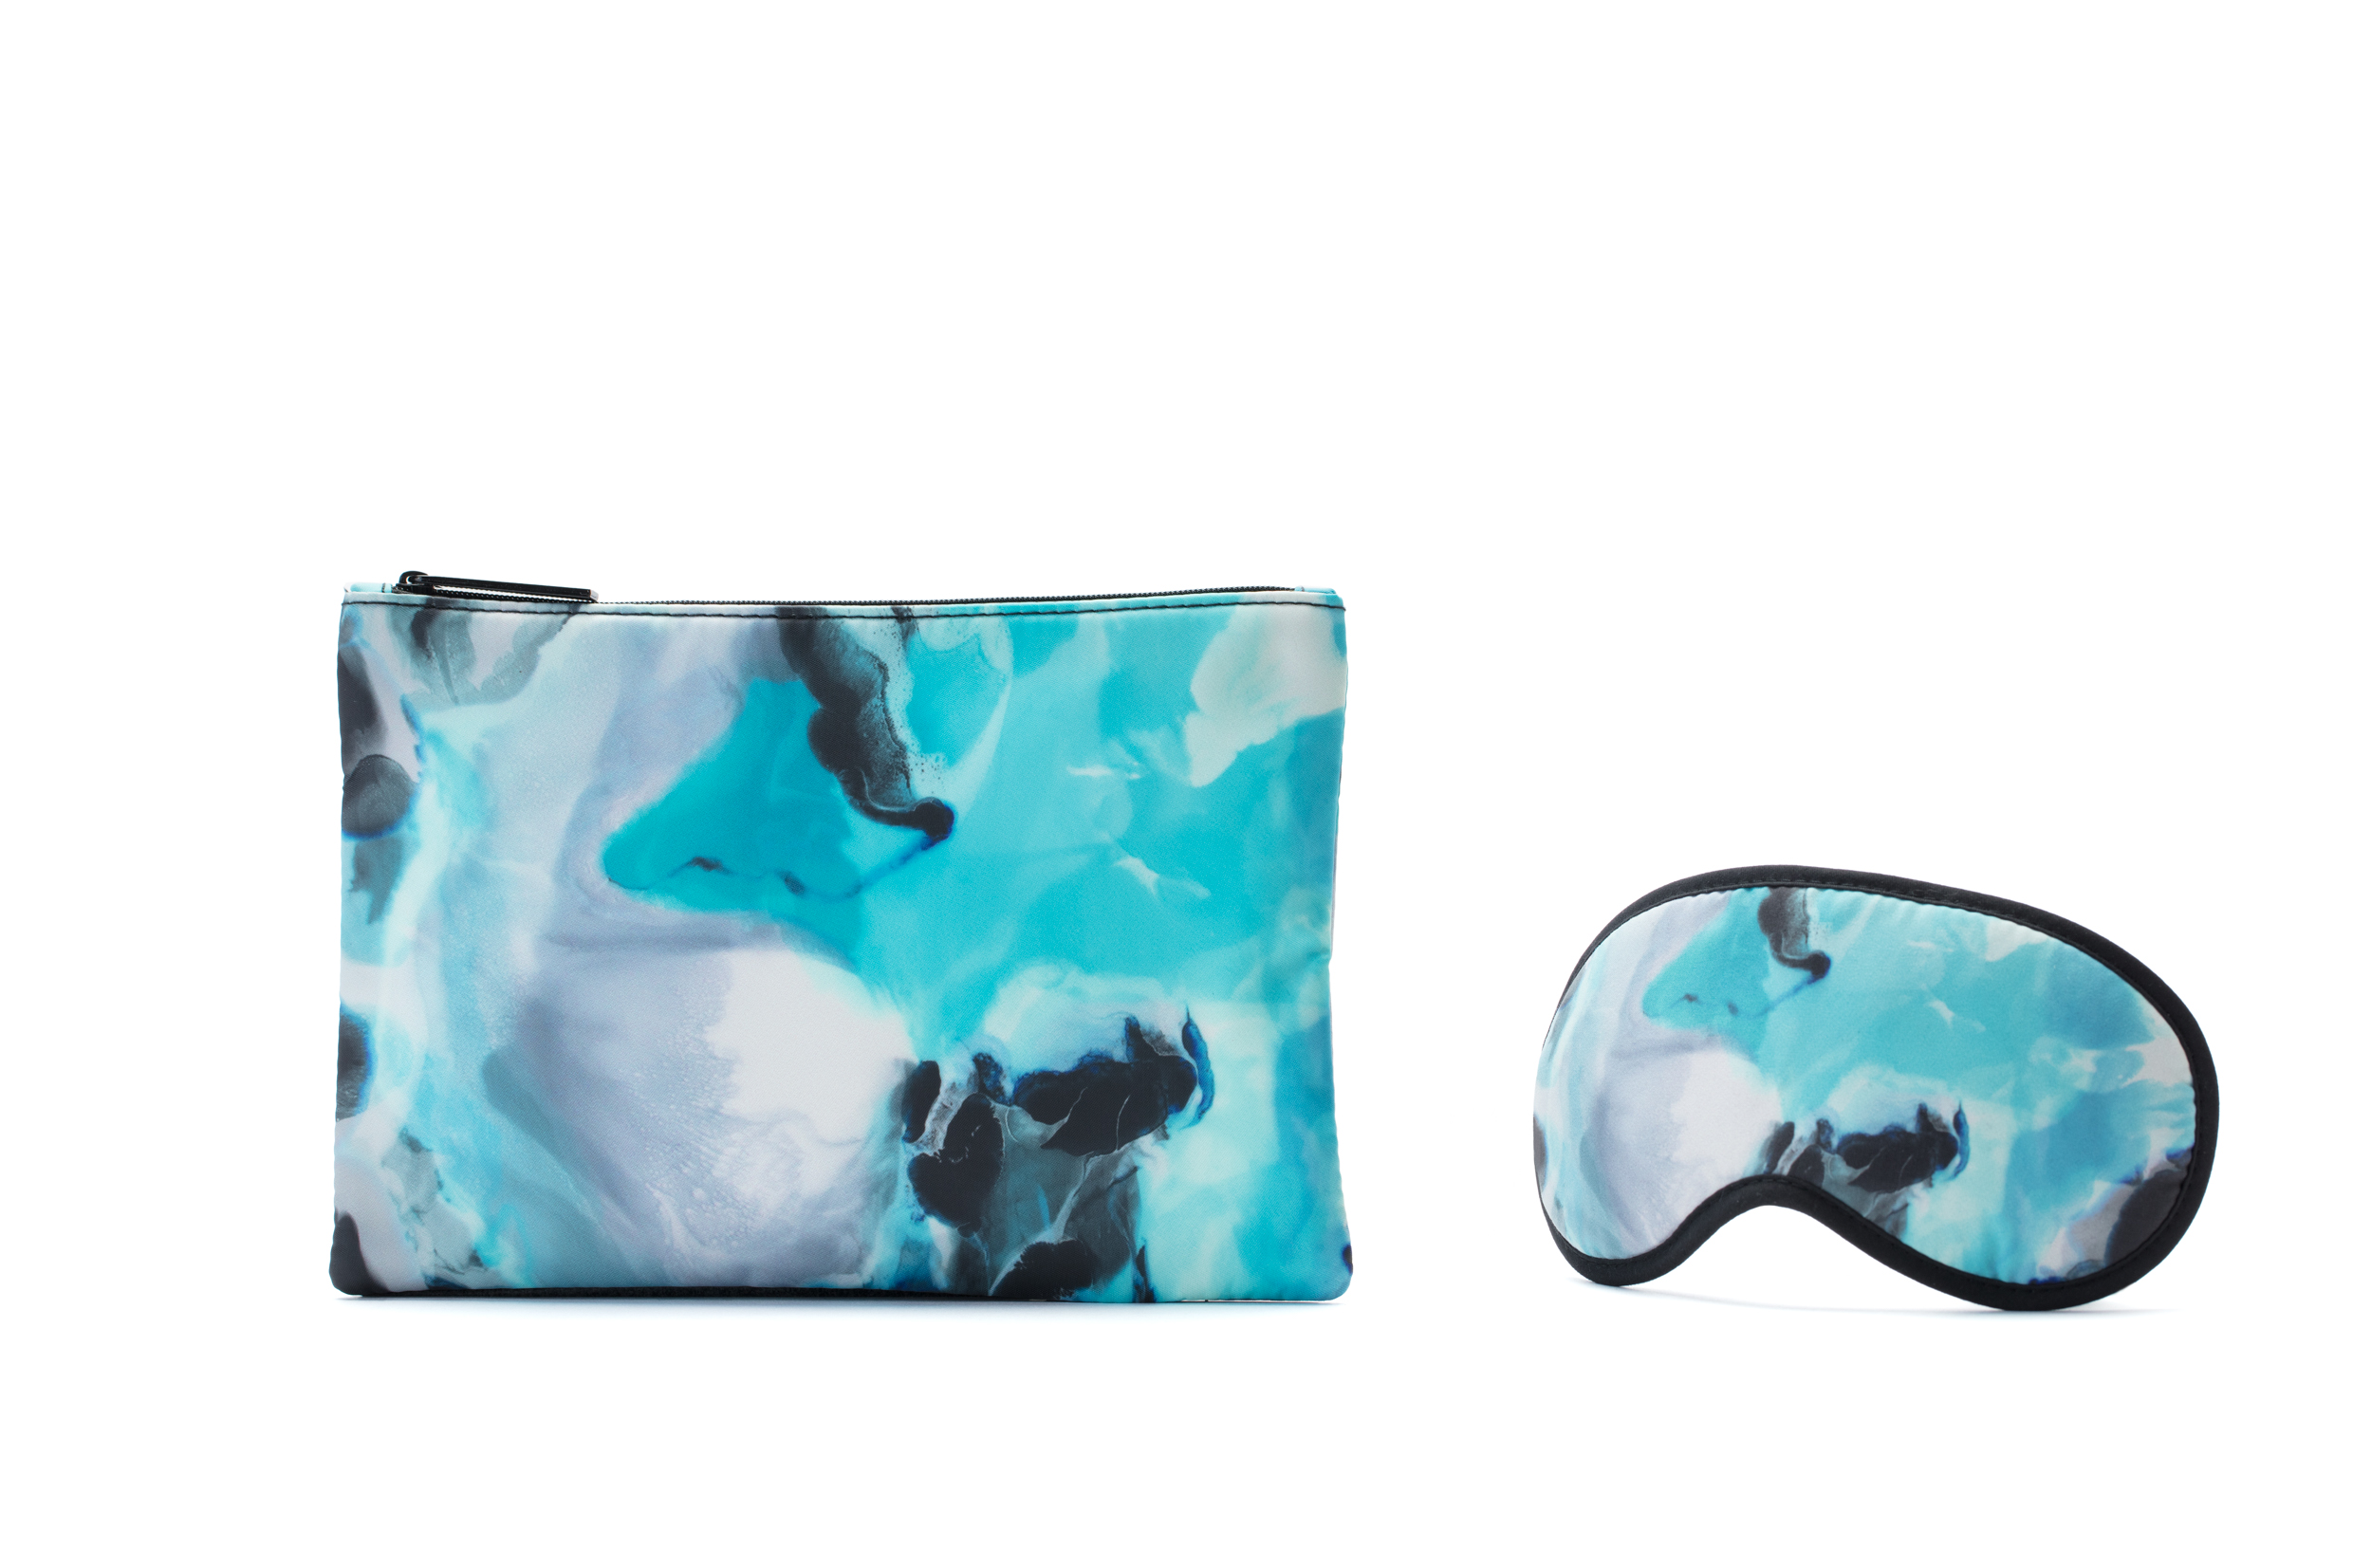 "MEGAN WESTON FOR QANTAS ""ICELAND' AMENITY KIT  COMING SOON TO ALL INTERNATIONAL BUSINESS CLASS FLIGHTS"